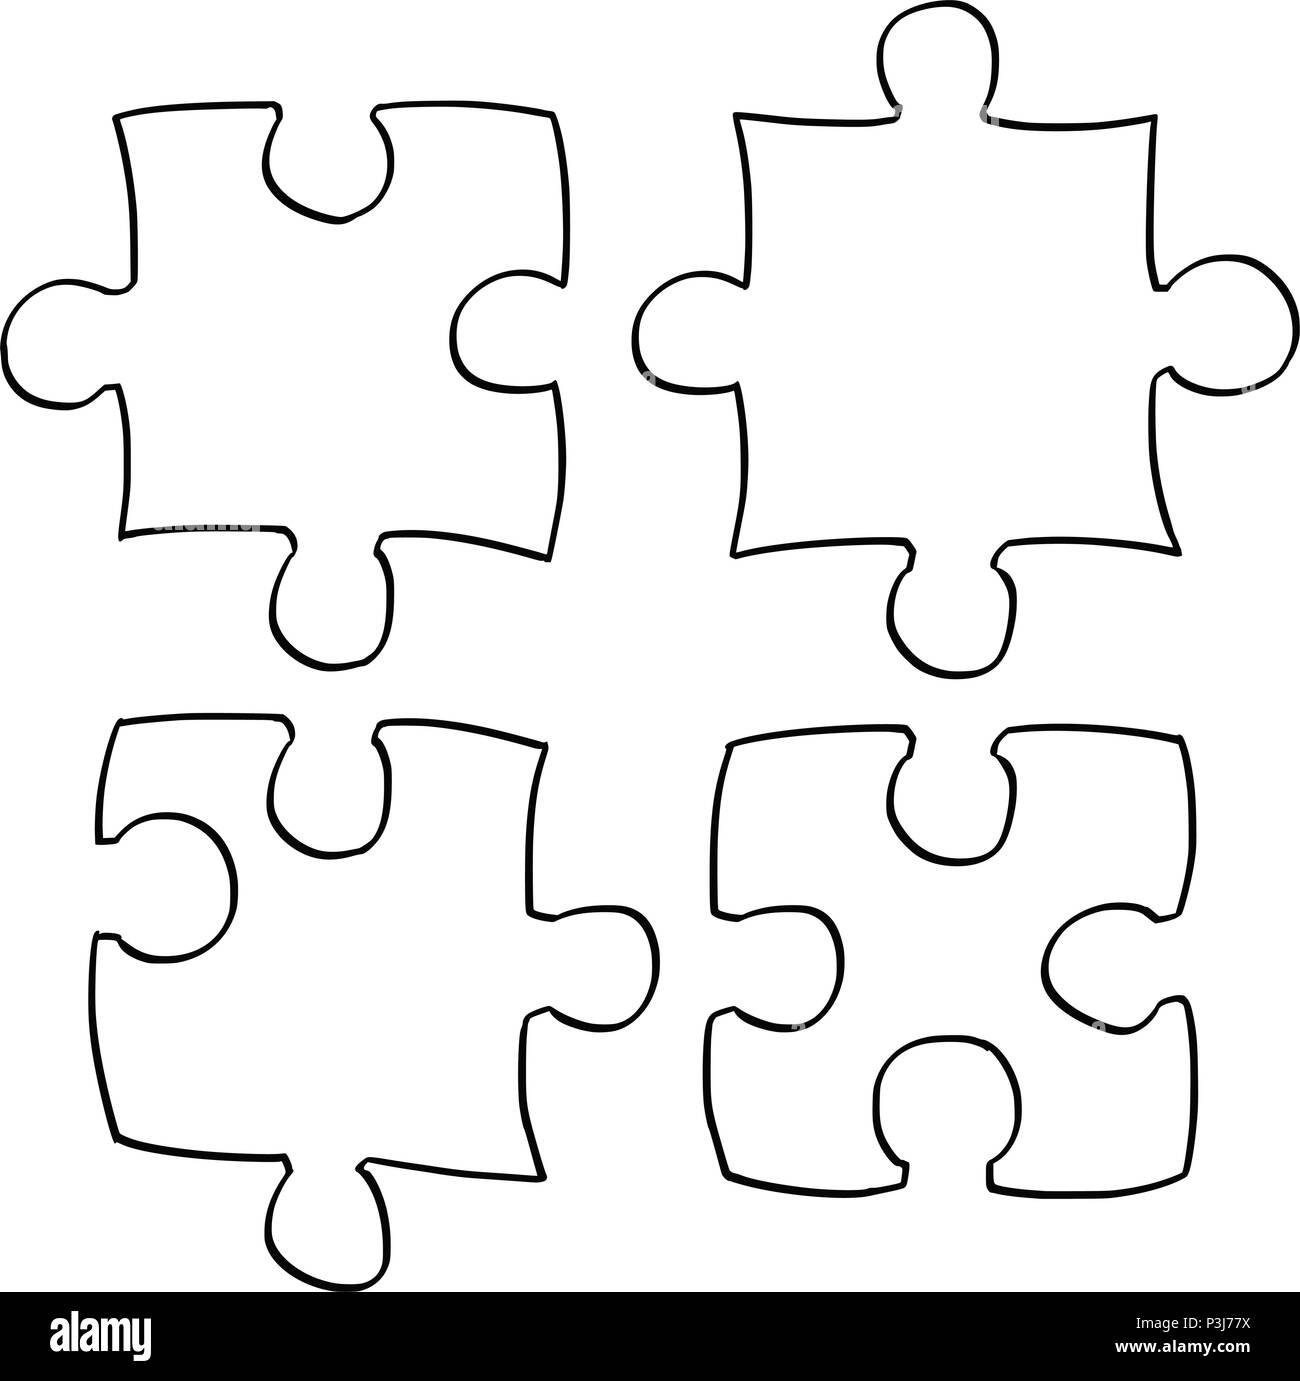 Vector artistic drawing illustration of four jigsaw puzzle pieces stock vector art - Puzzle dessin ...